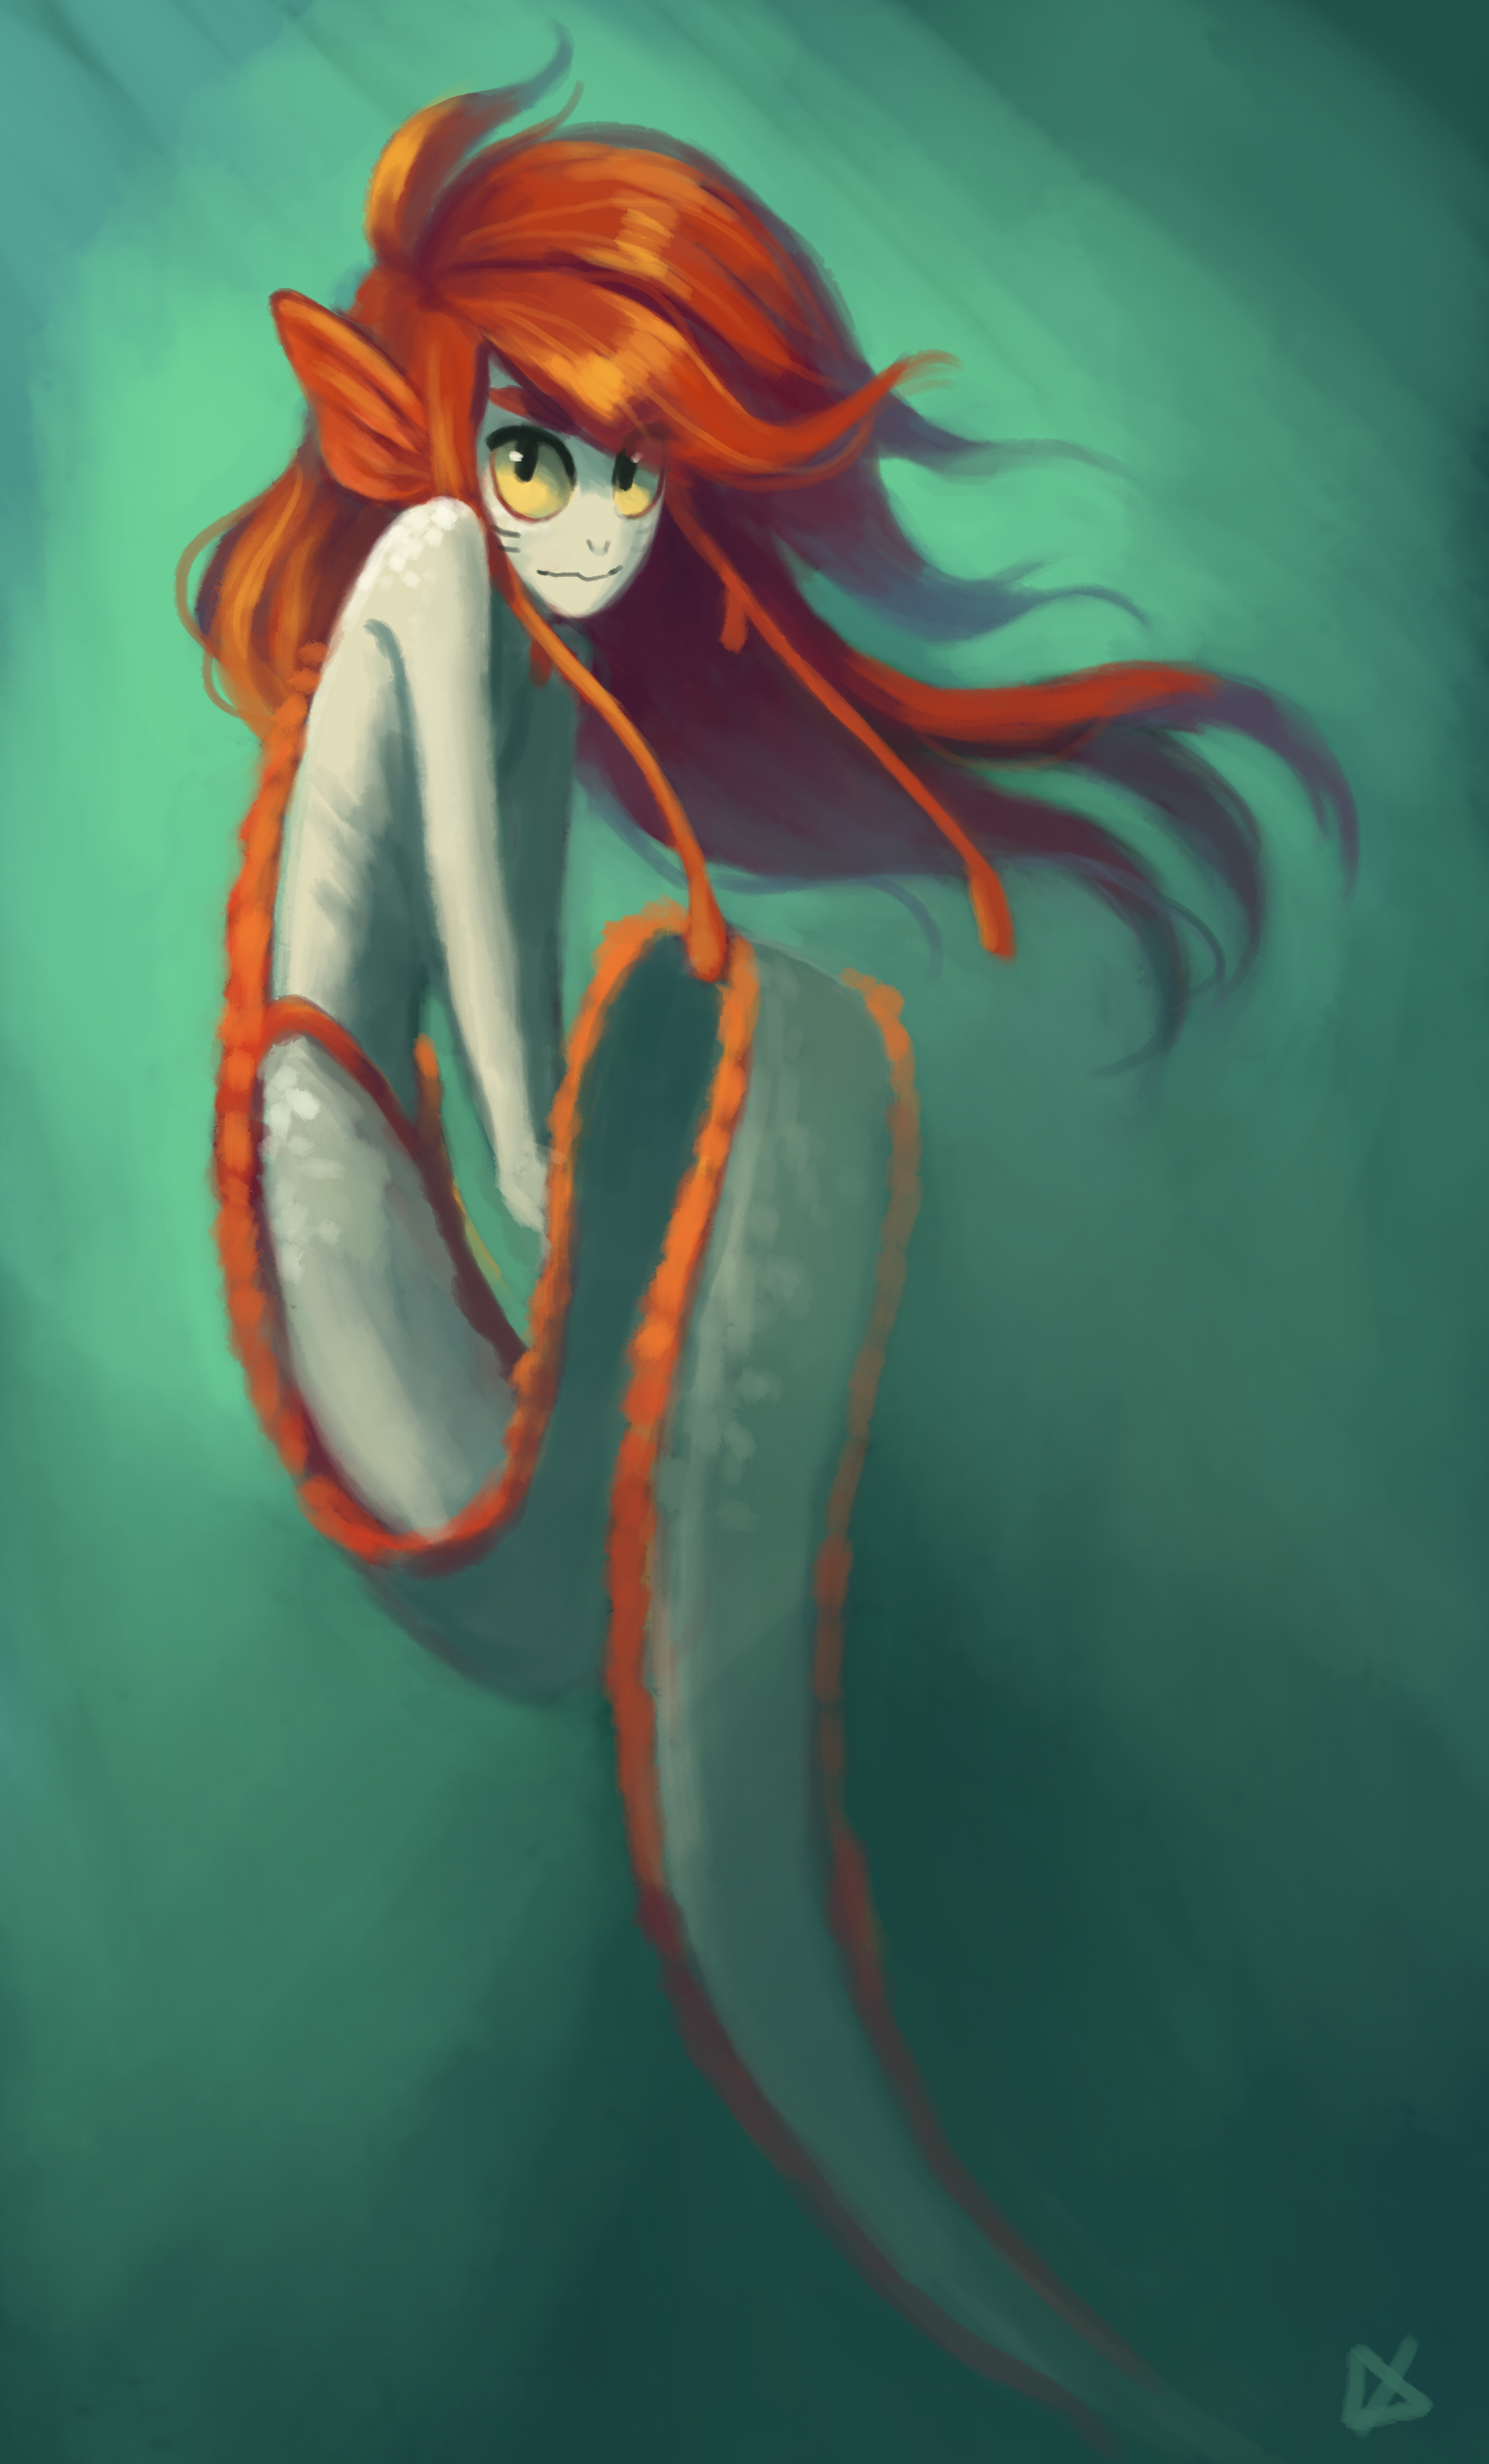 Character Design Challenge April : Lucy xue monthly character design challenges